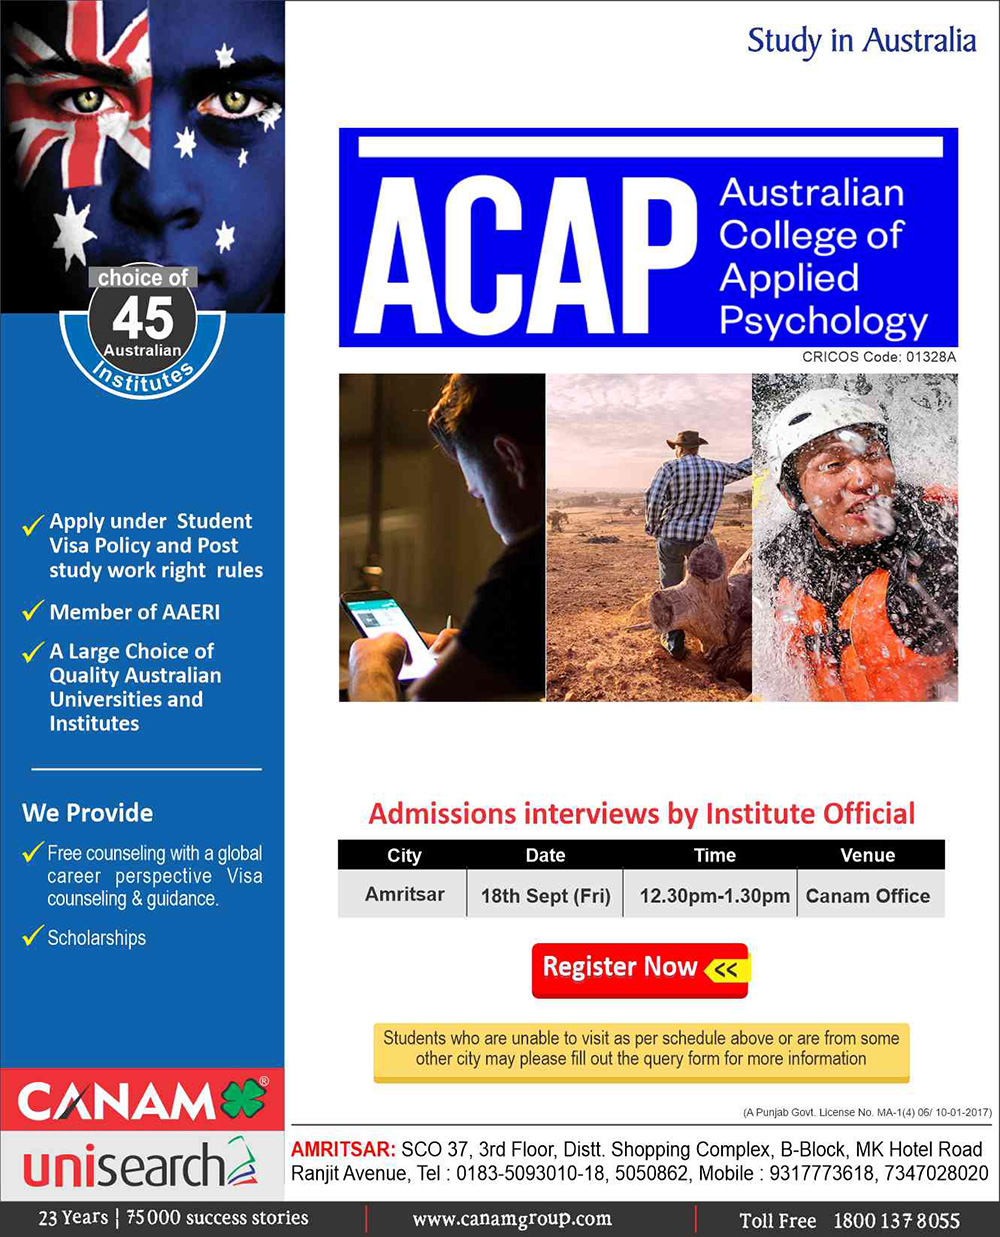 australian-college-of-applied-psychology